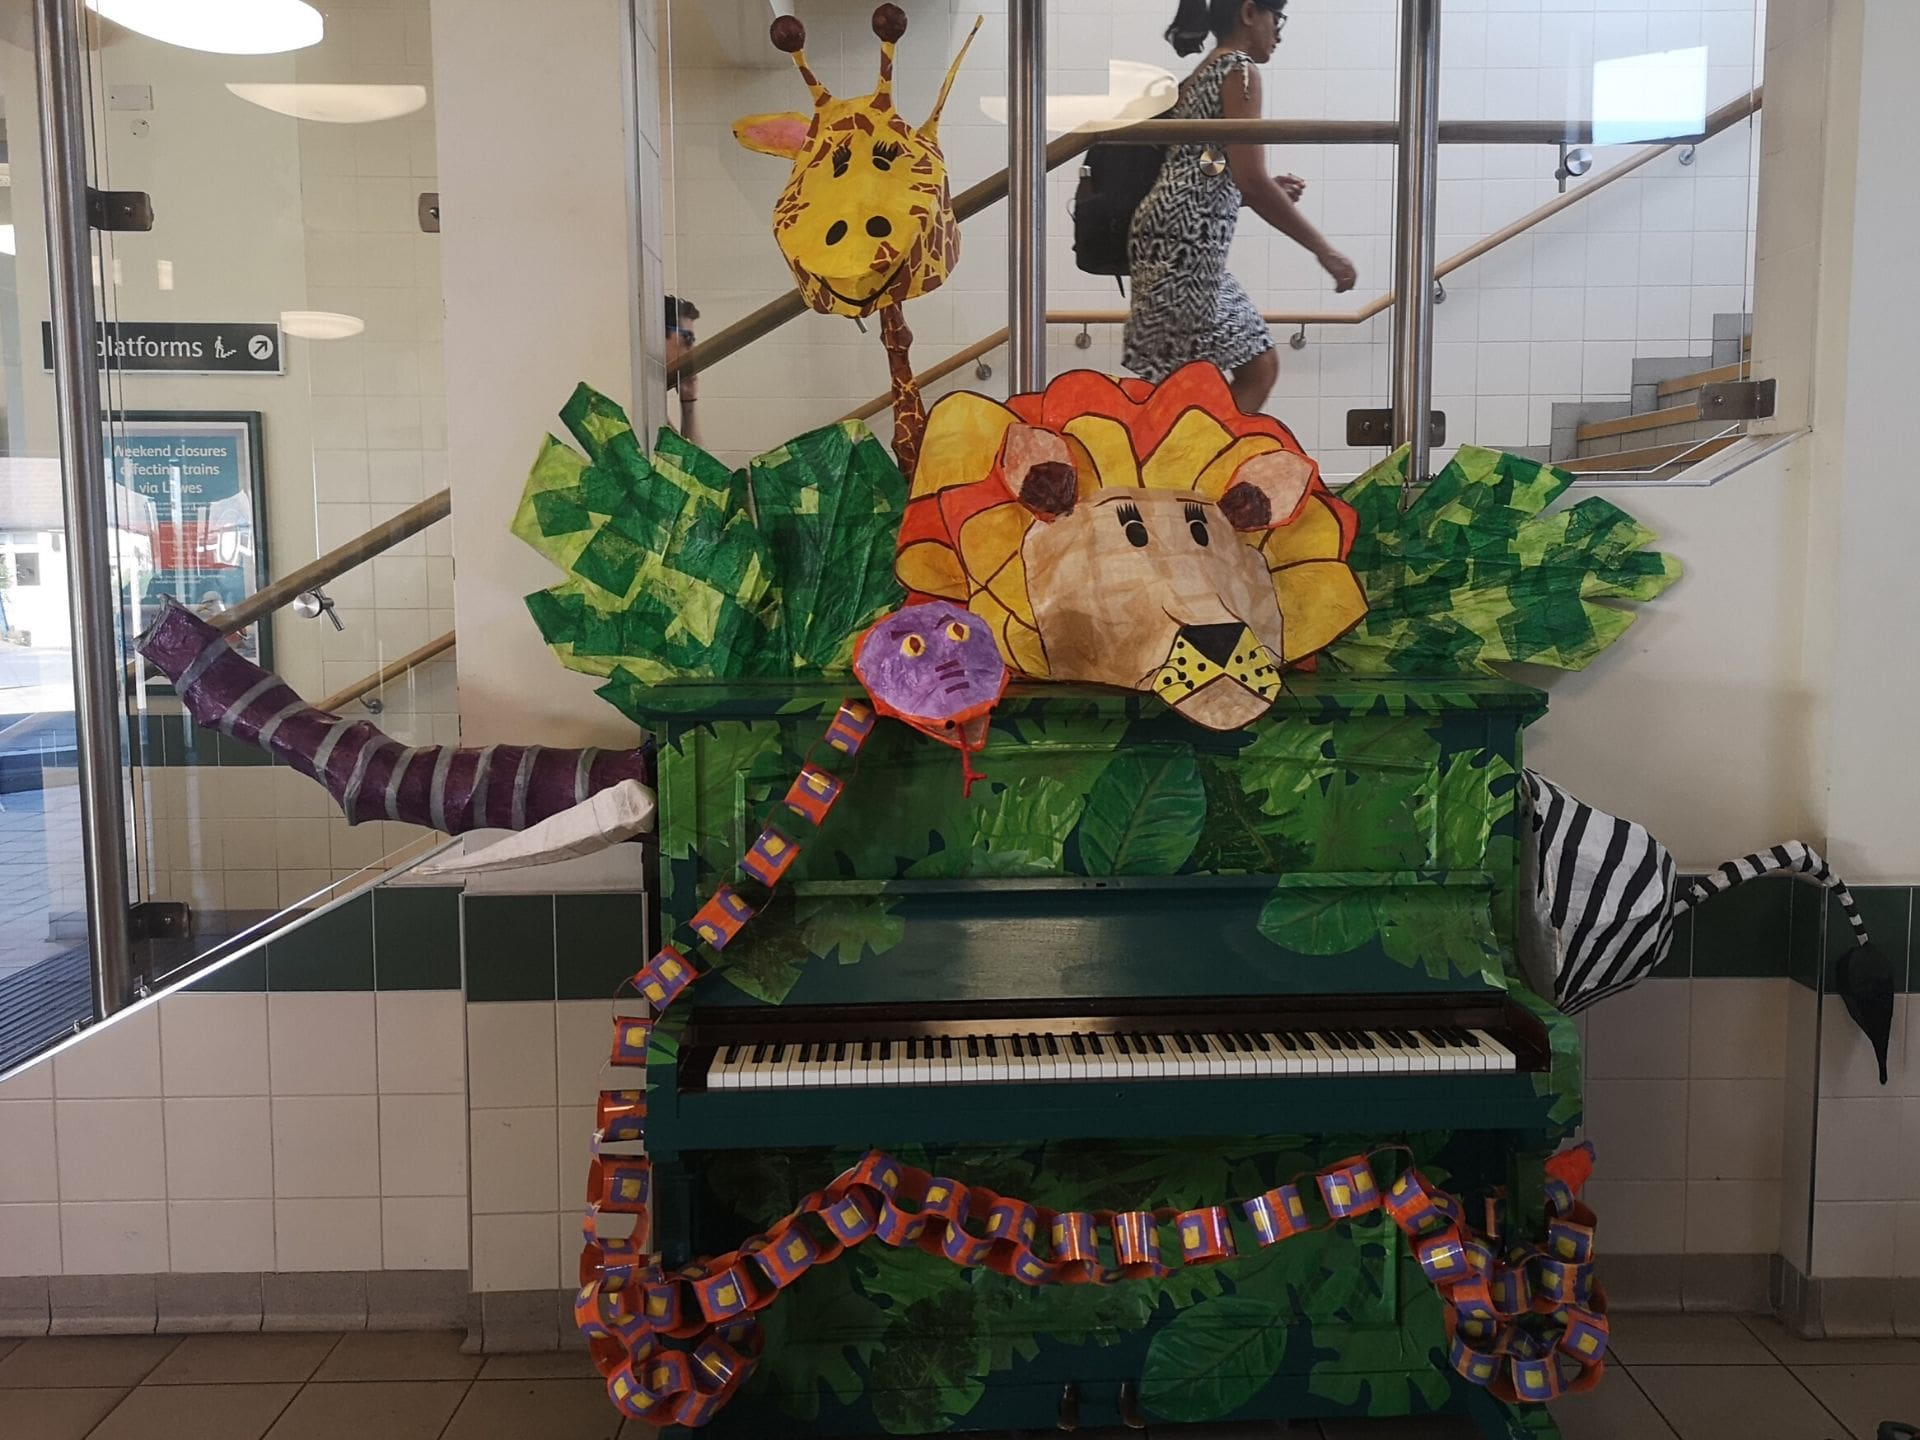 A wild animal-themed piano at Horsham station